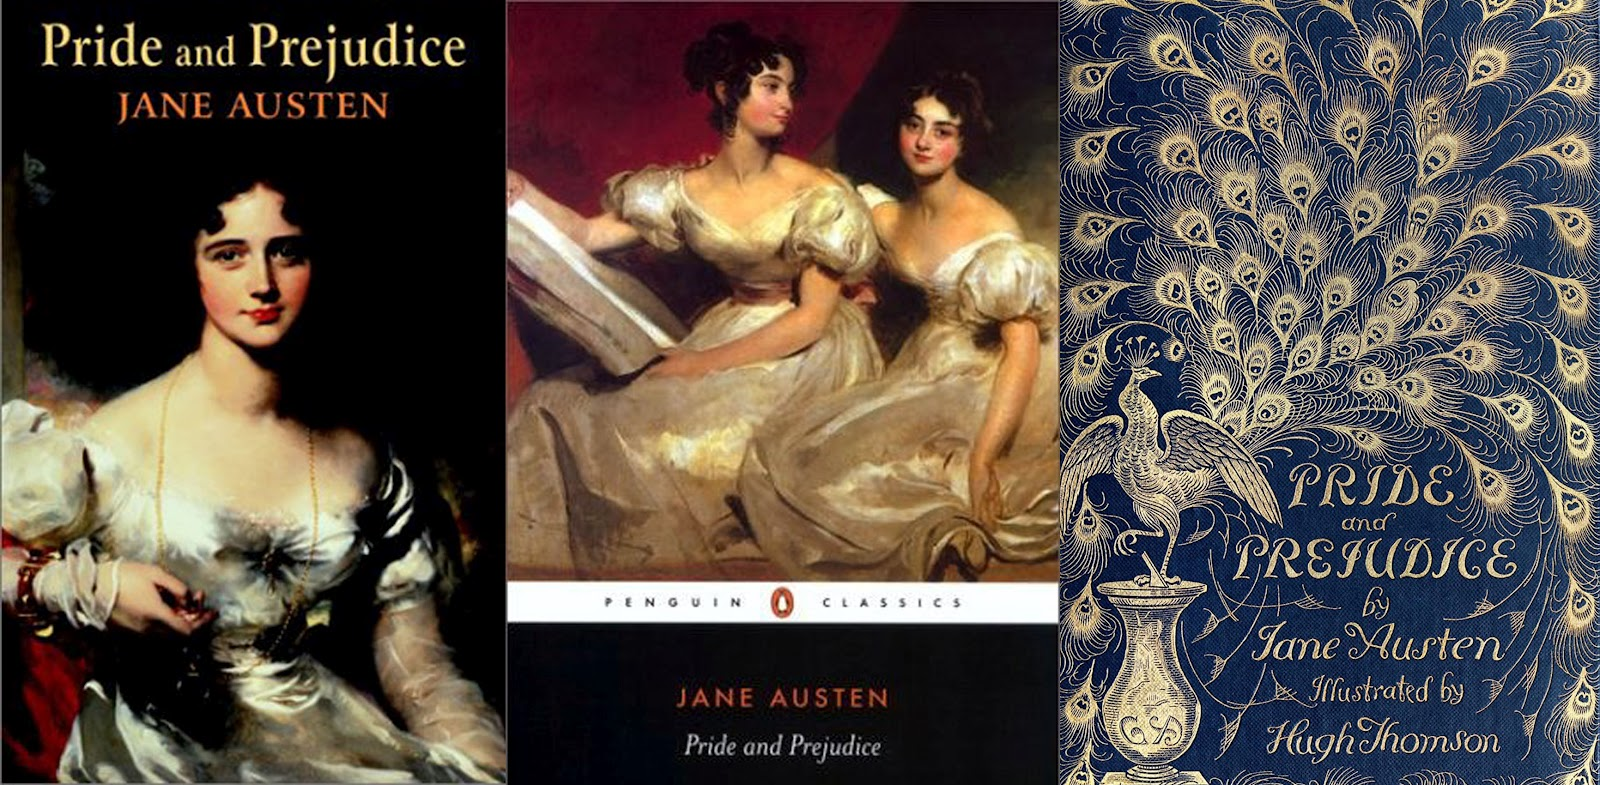 an essay on jane austens pride and prejudice Pride and prejudice by jane austen had put my left out dictionary into good use i have to admit, i was very slow in the first pages, however, nearing the end, i was like a driver going at 100mph, eager to reach the finish lin i cannot fix on the hour, or the spot, or the look, or the words, which laid the foundation.